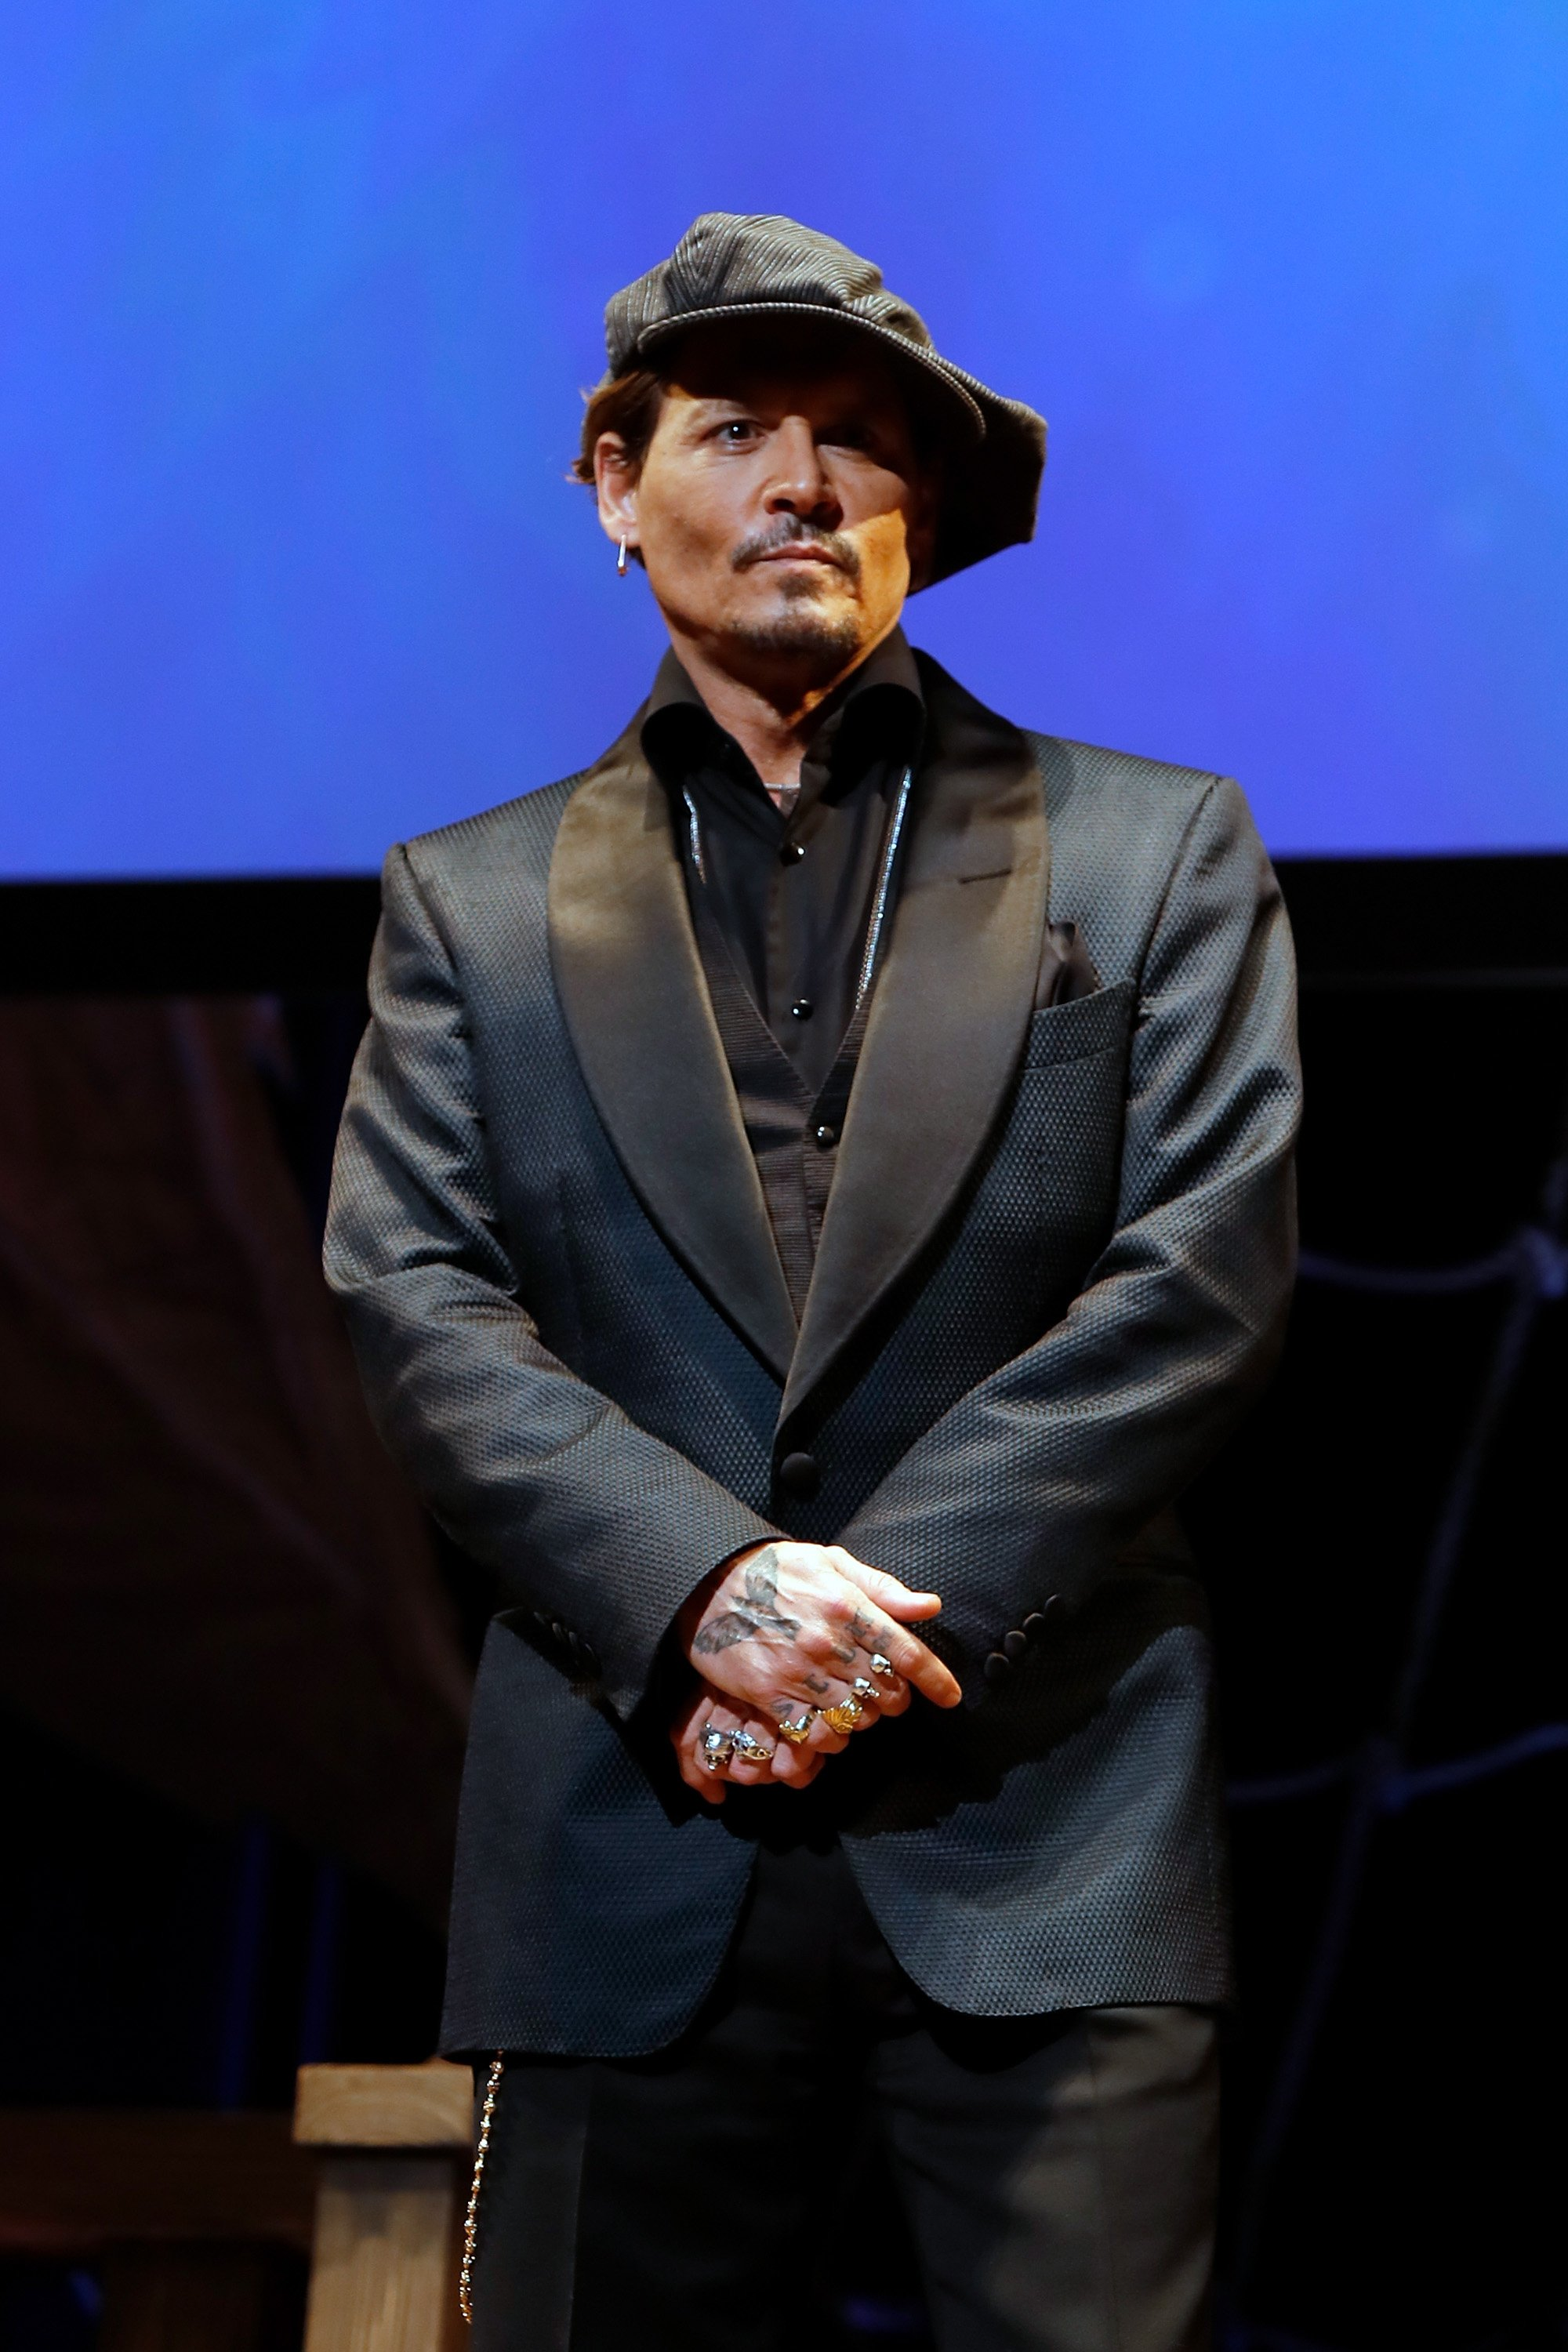 Johnny Depp attends the Japan premiere of 'Pirates Of The Caribbean: Dead Men Tell No Tales' at the Shinagawa Prince Hotel on June 20, 2017 in Tokyo